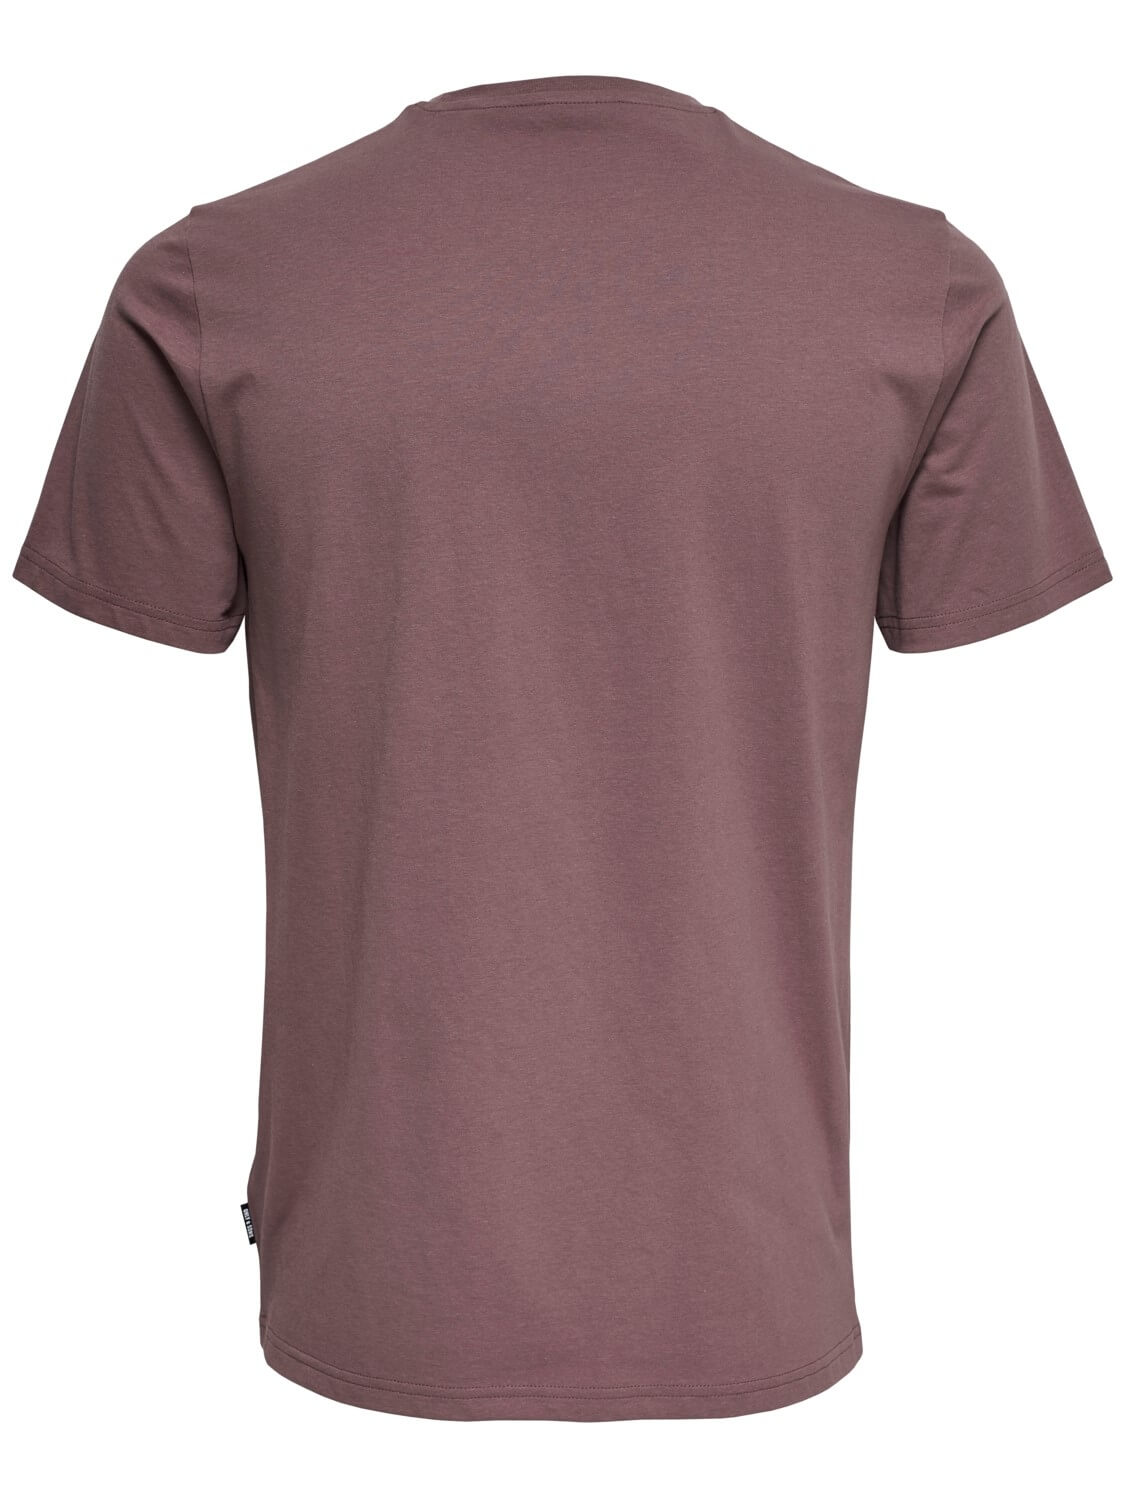 ONLY SONS Férfi póló Elmo Camp Fitted Ss Tee Rose Taupe  de805d0265